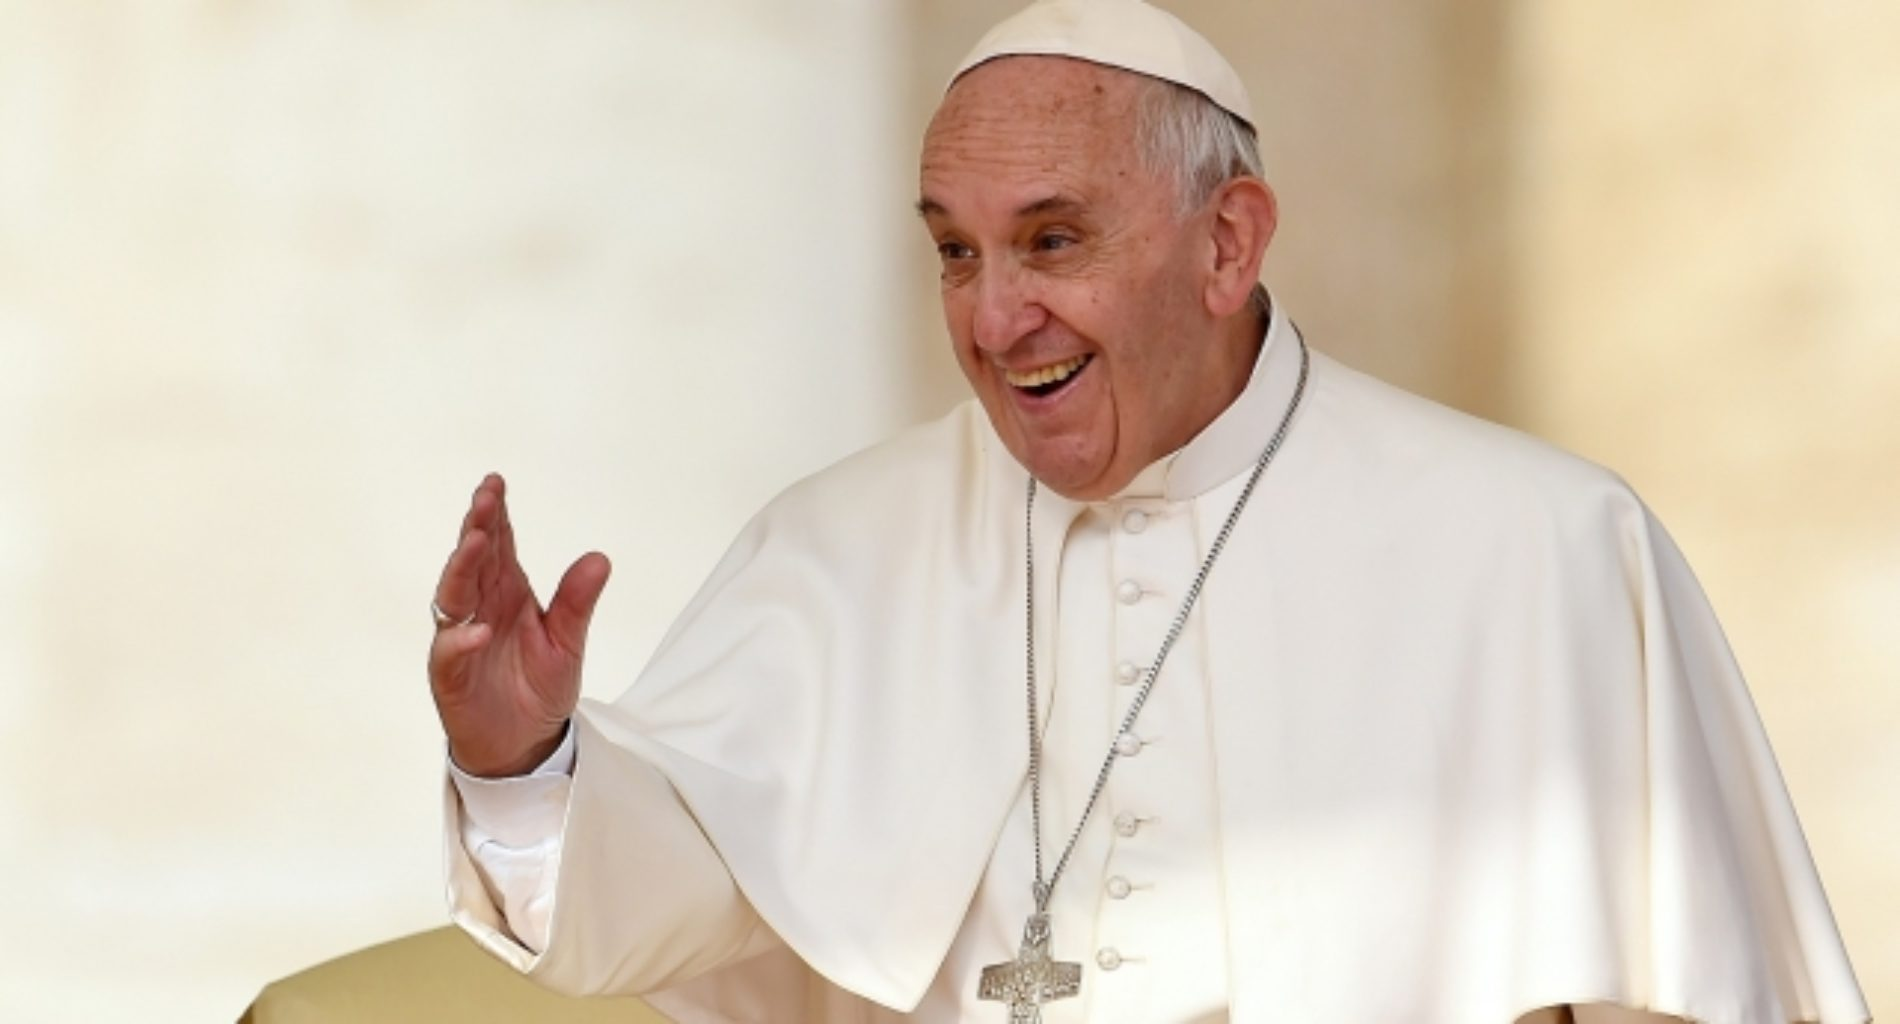 Pope Francis Speaks Out On Transgender Issues